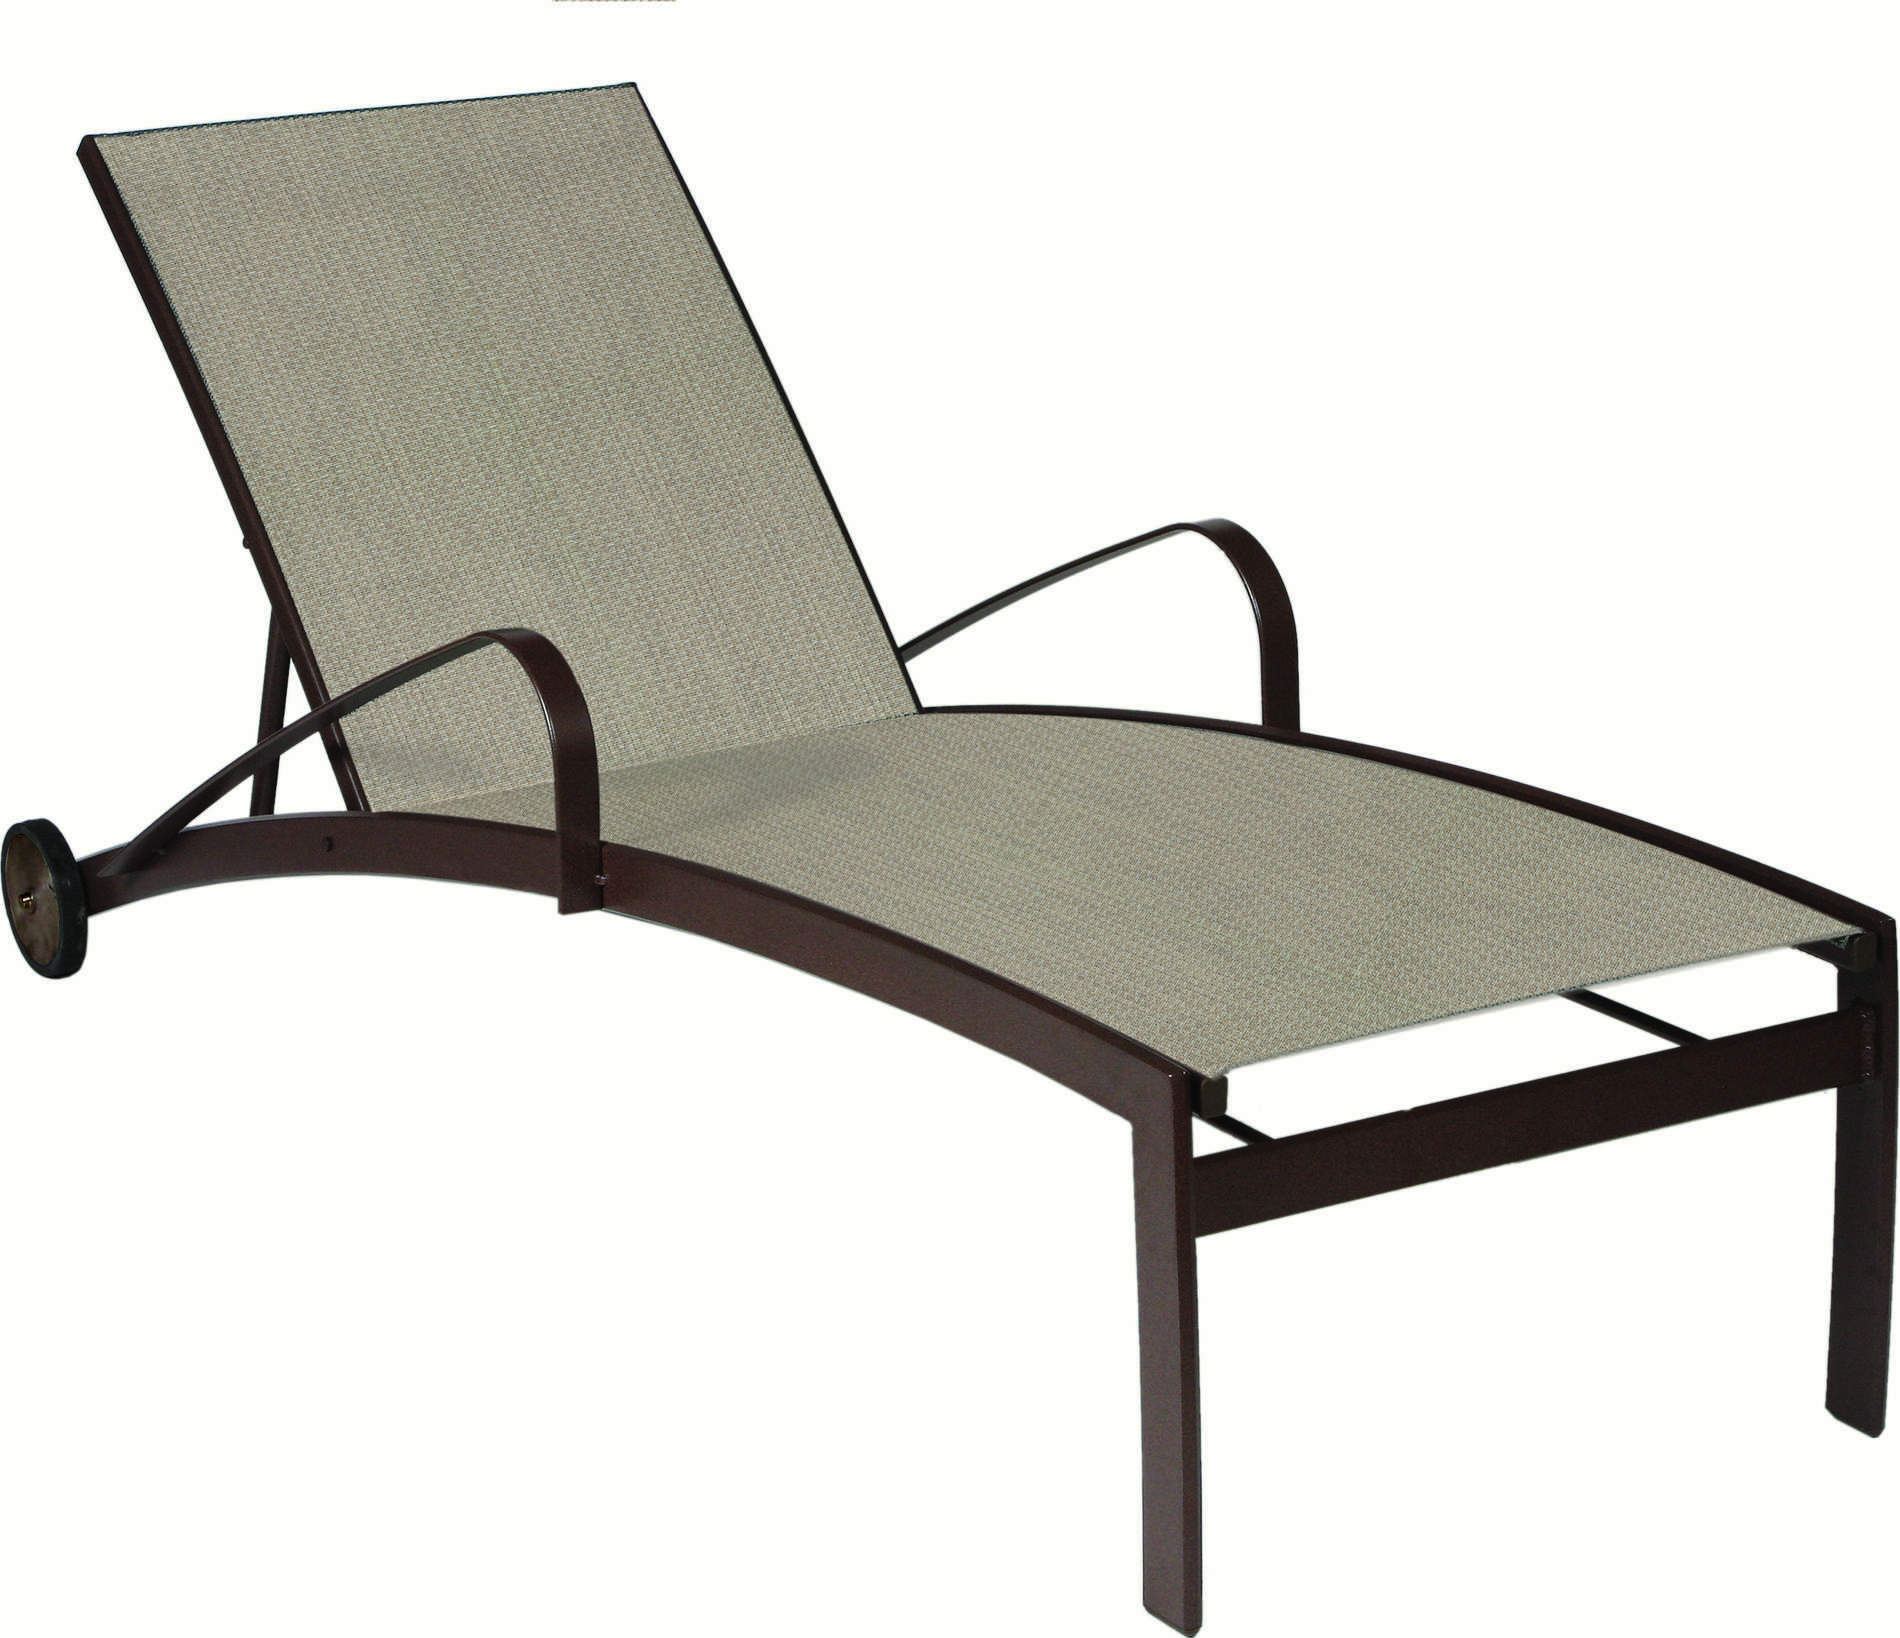 Suncoast vision sling cast aluminum chaise lounge with for Aluminum chaise lounge with wheels